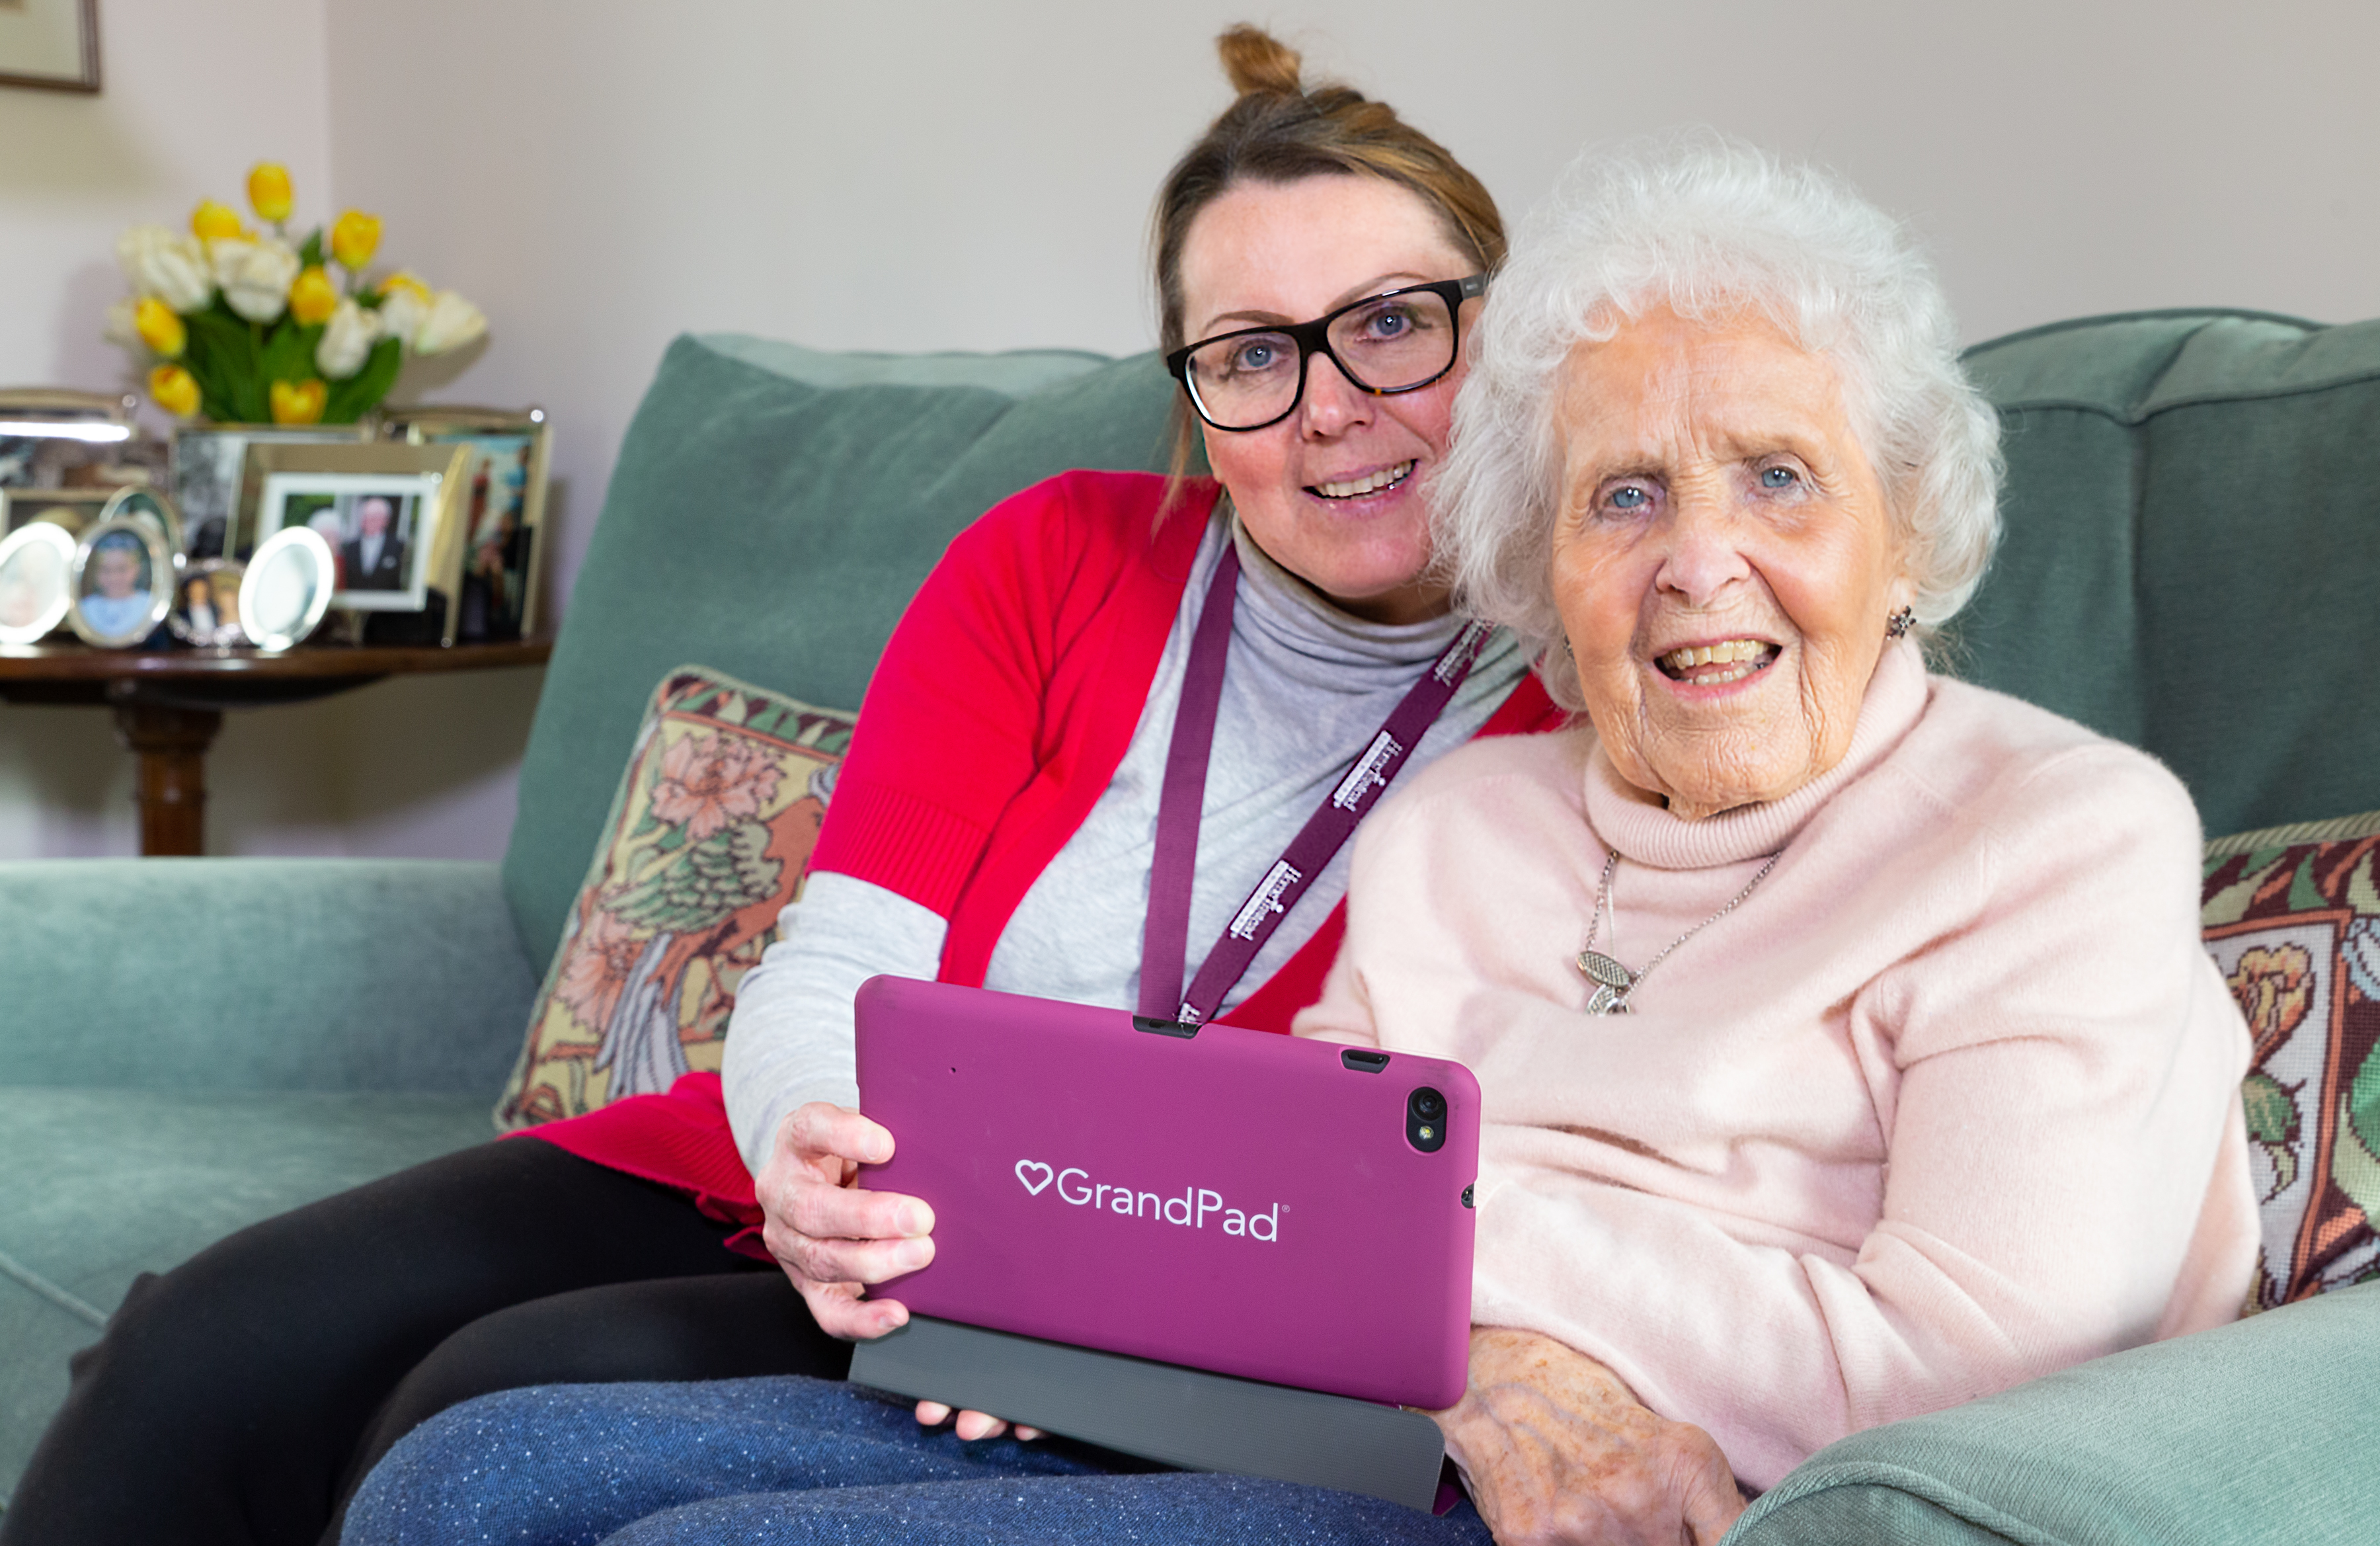 CAREGiver and client using GrandPad